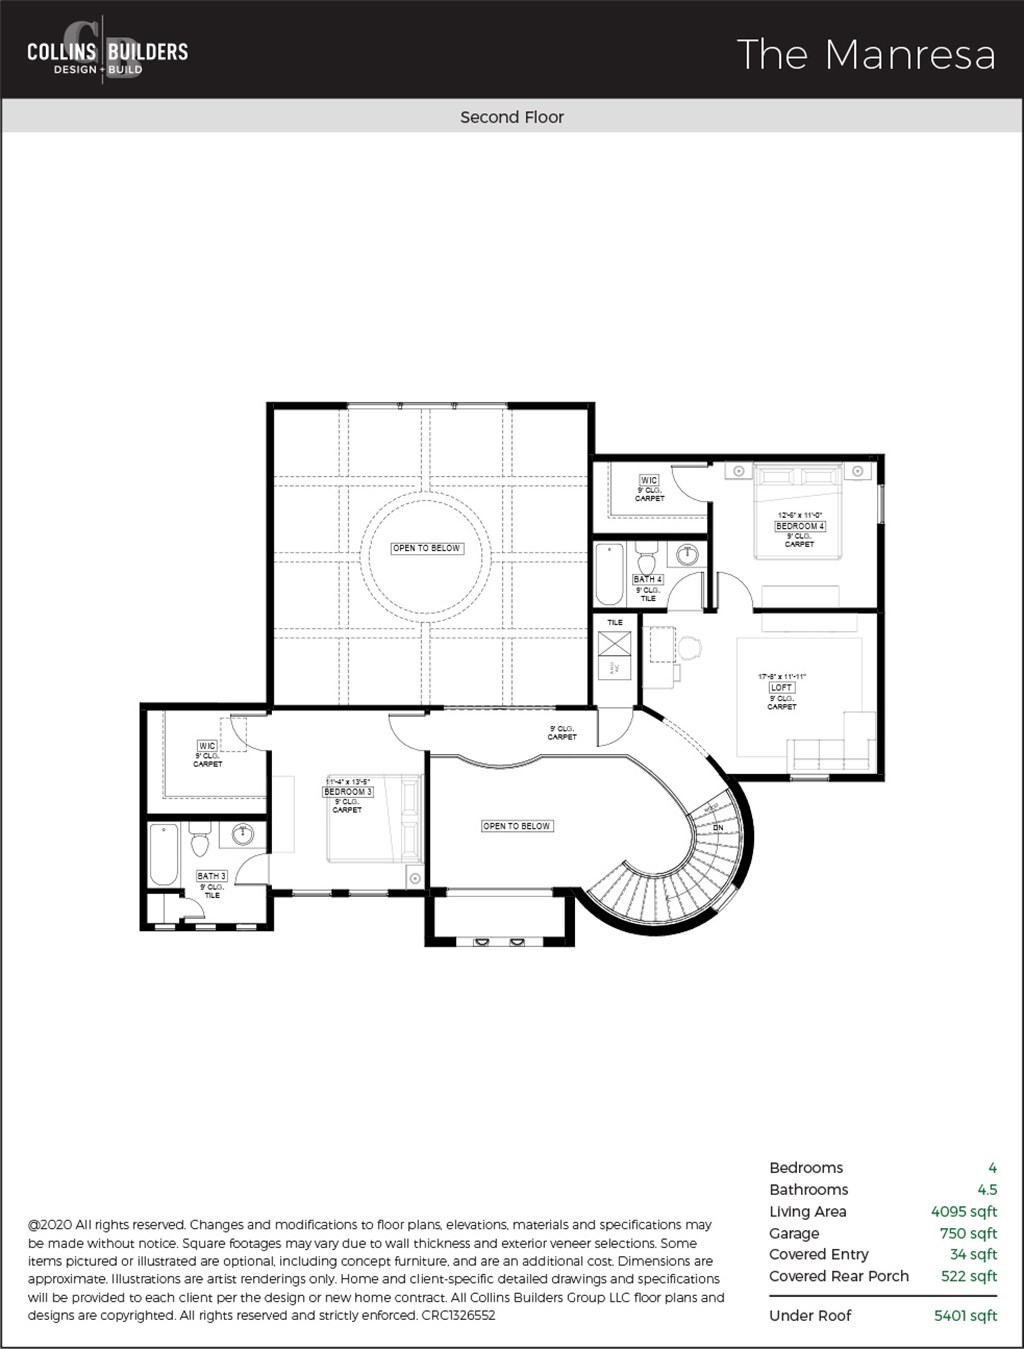 Floor Plan The Manresa Second Floor